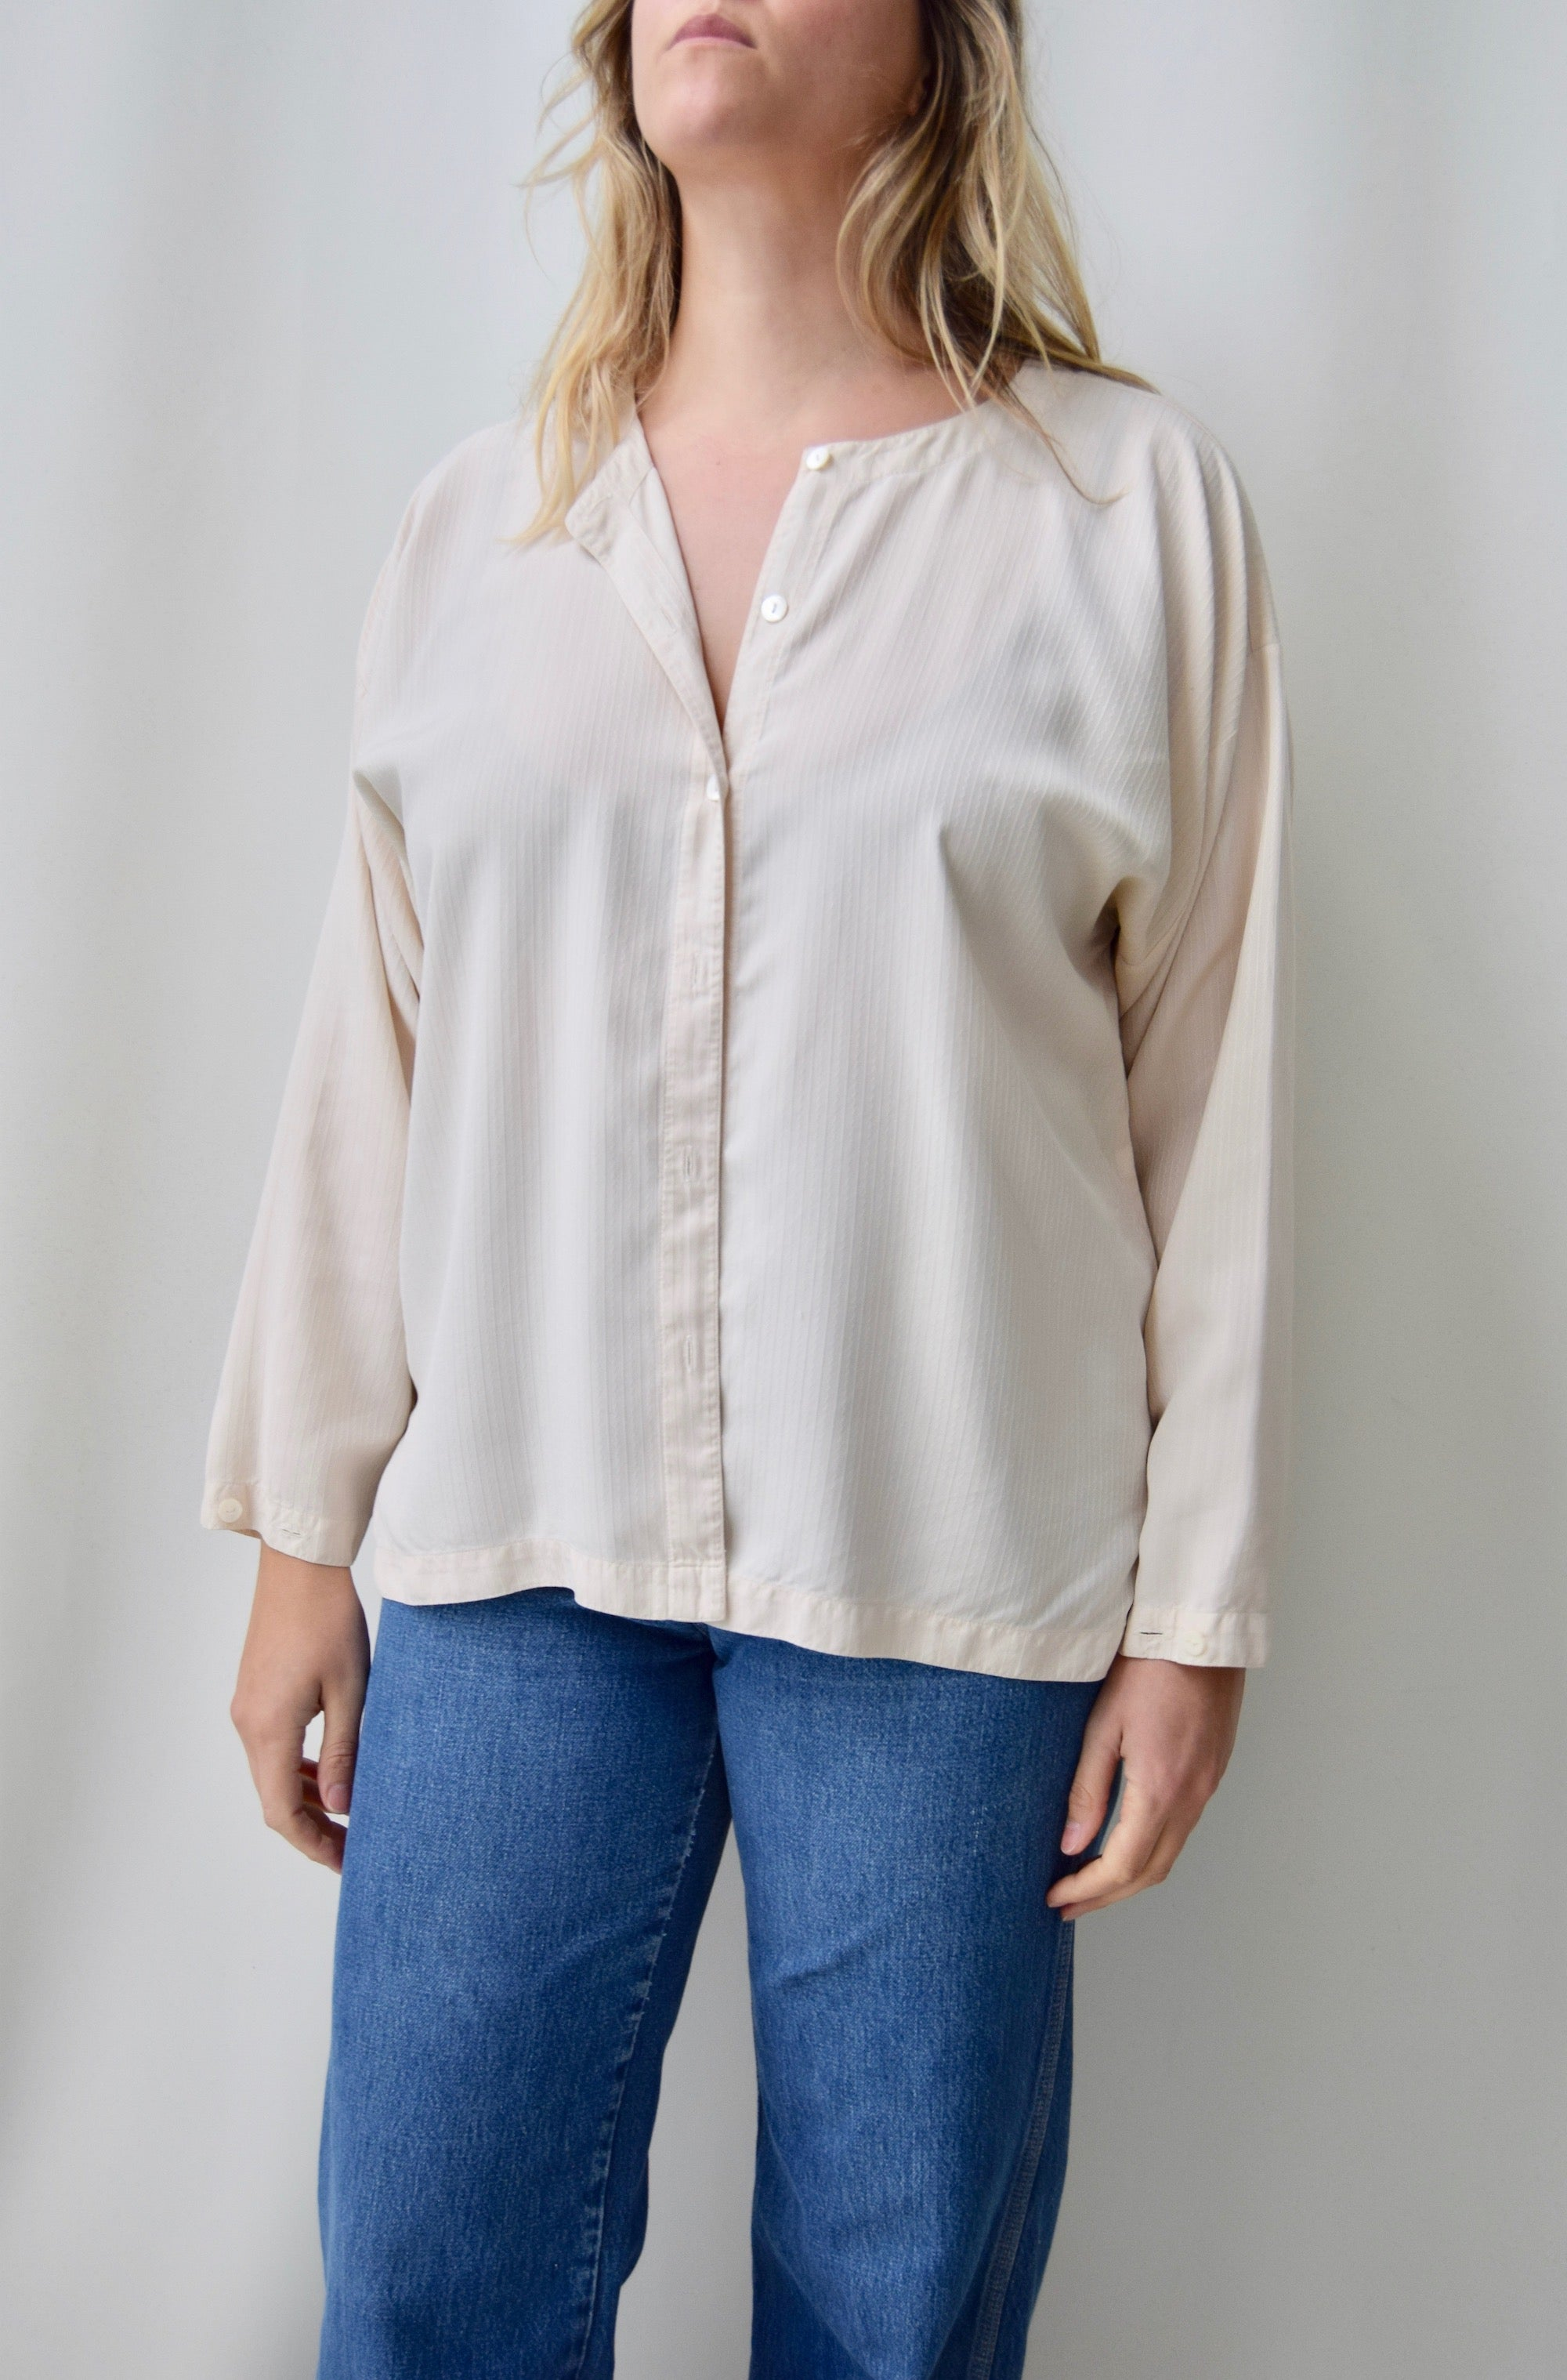 Vintage Eileen Fisher Silk Top